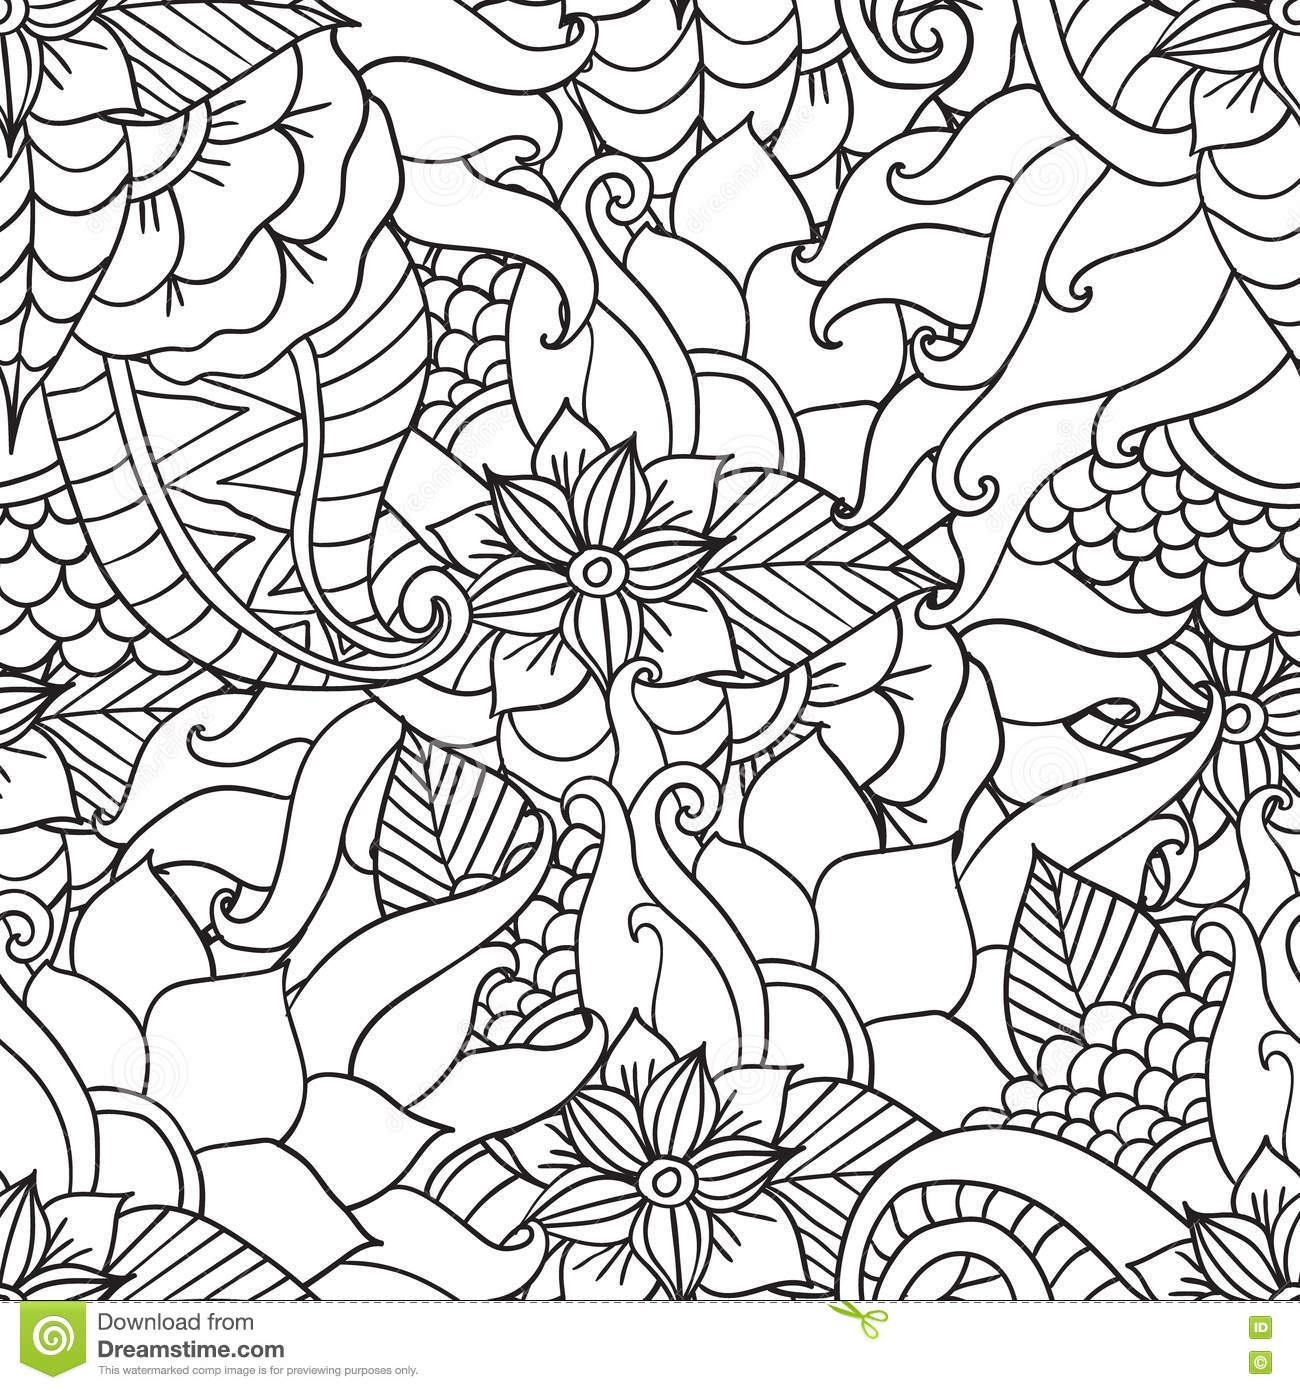 Coloring Pages T shirt Or Prints Vector Spring Illustrationseamless